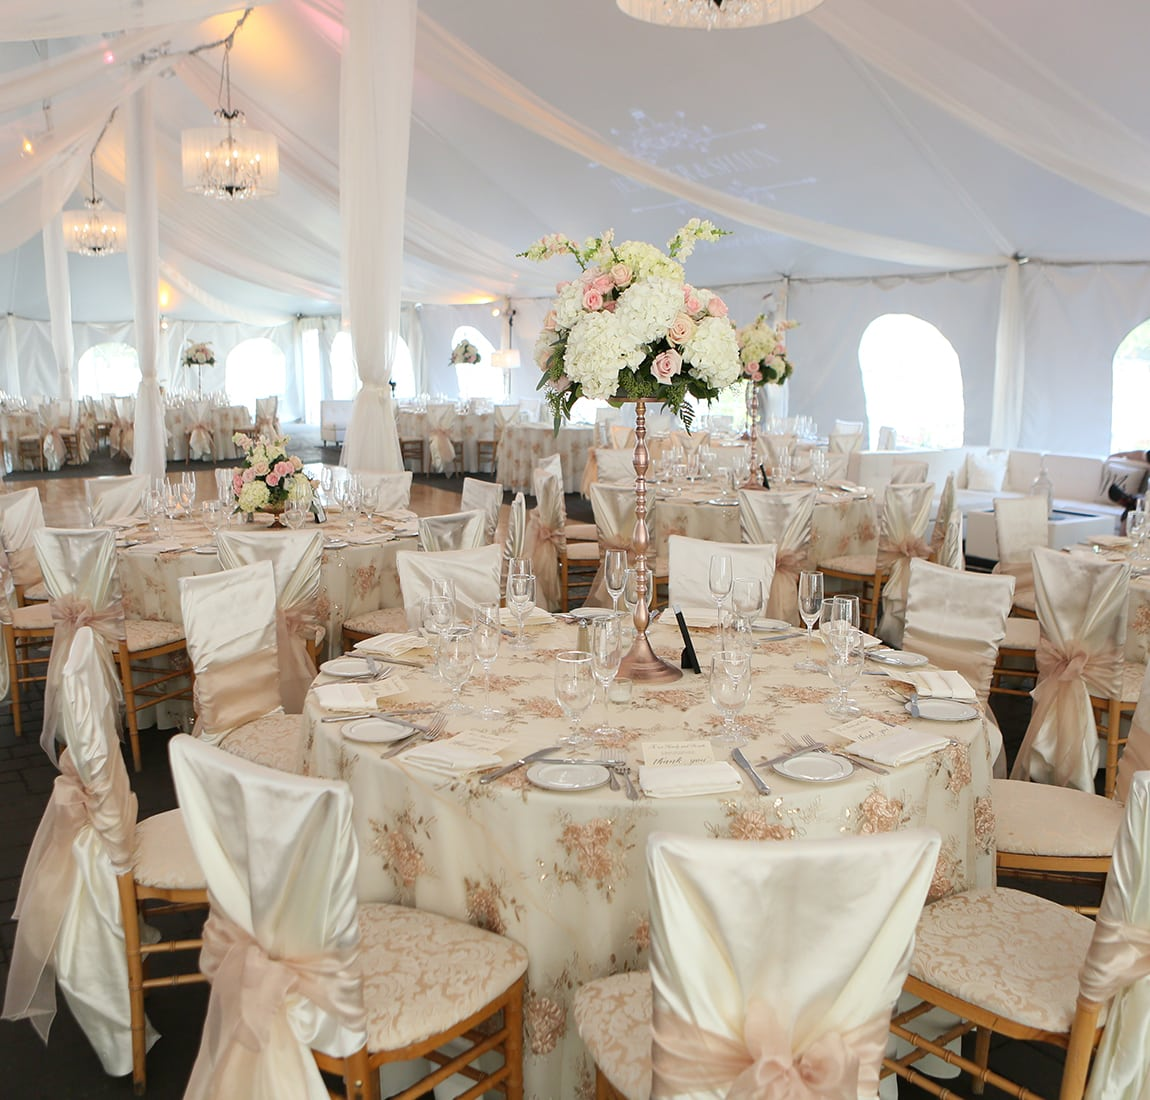 White Castle Wedding: Searles Castle Is A Unique Setting For Your Wedding Reception